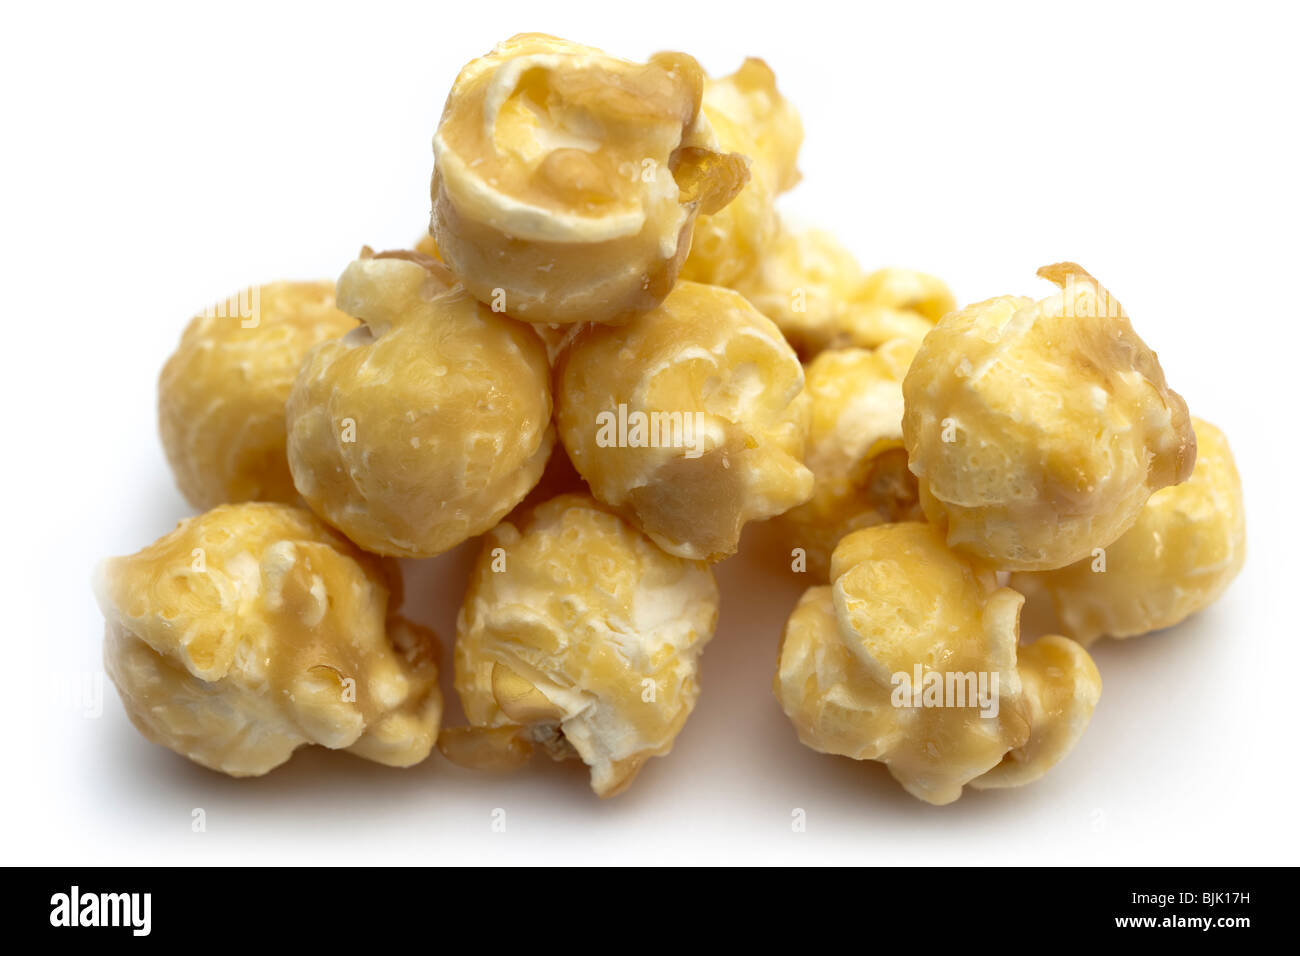 Pile of toffee covered popcorn - Stock Image